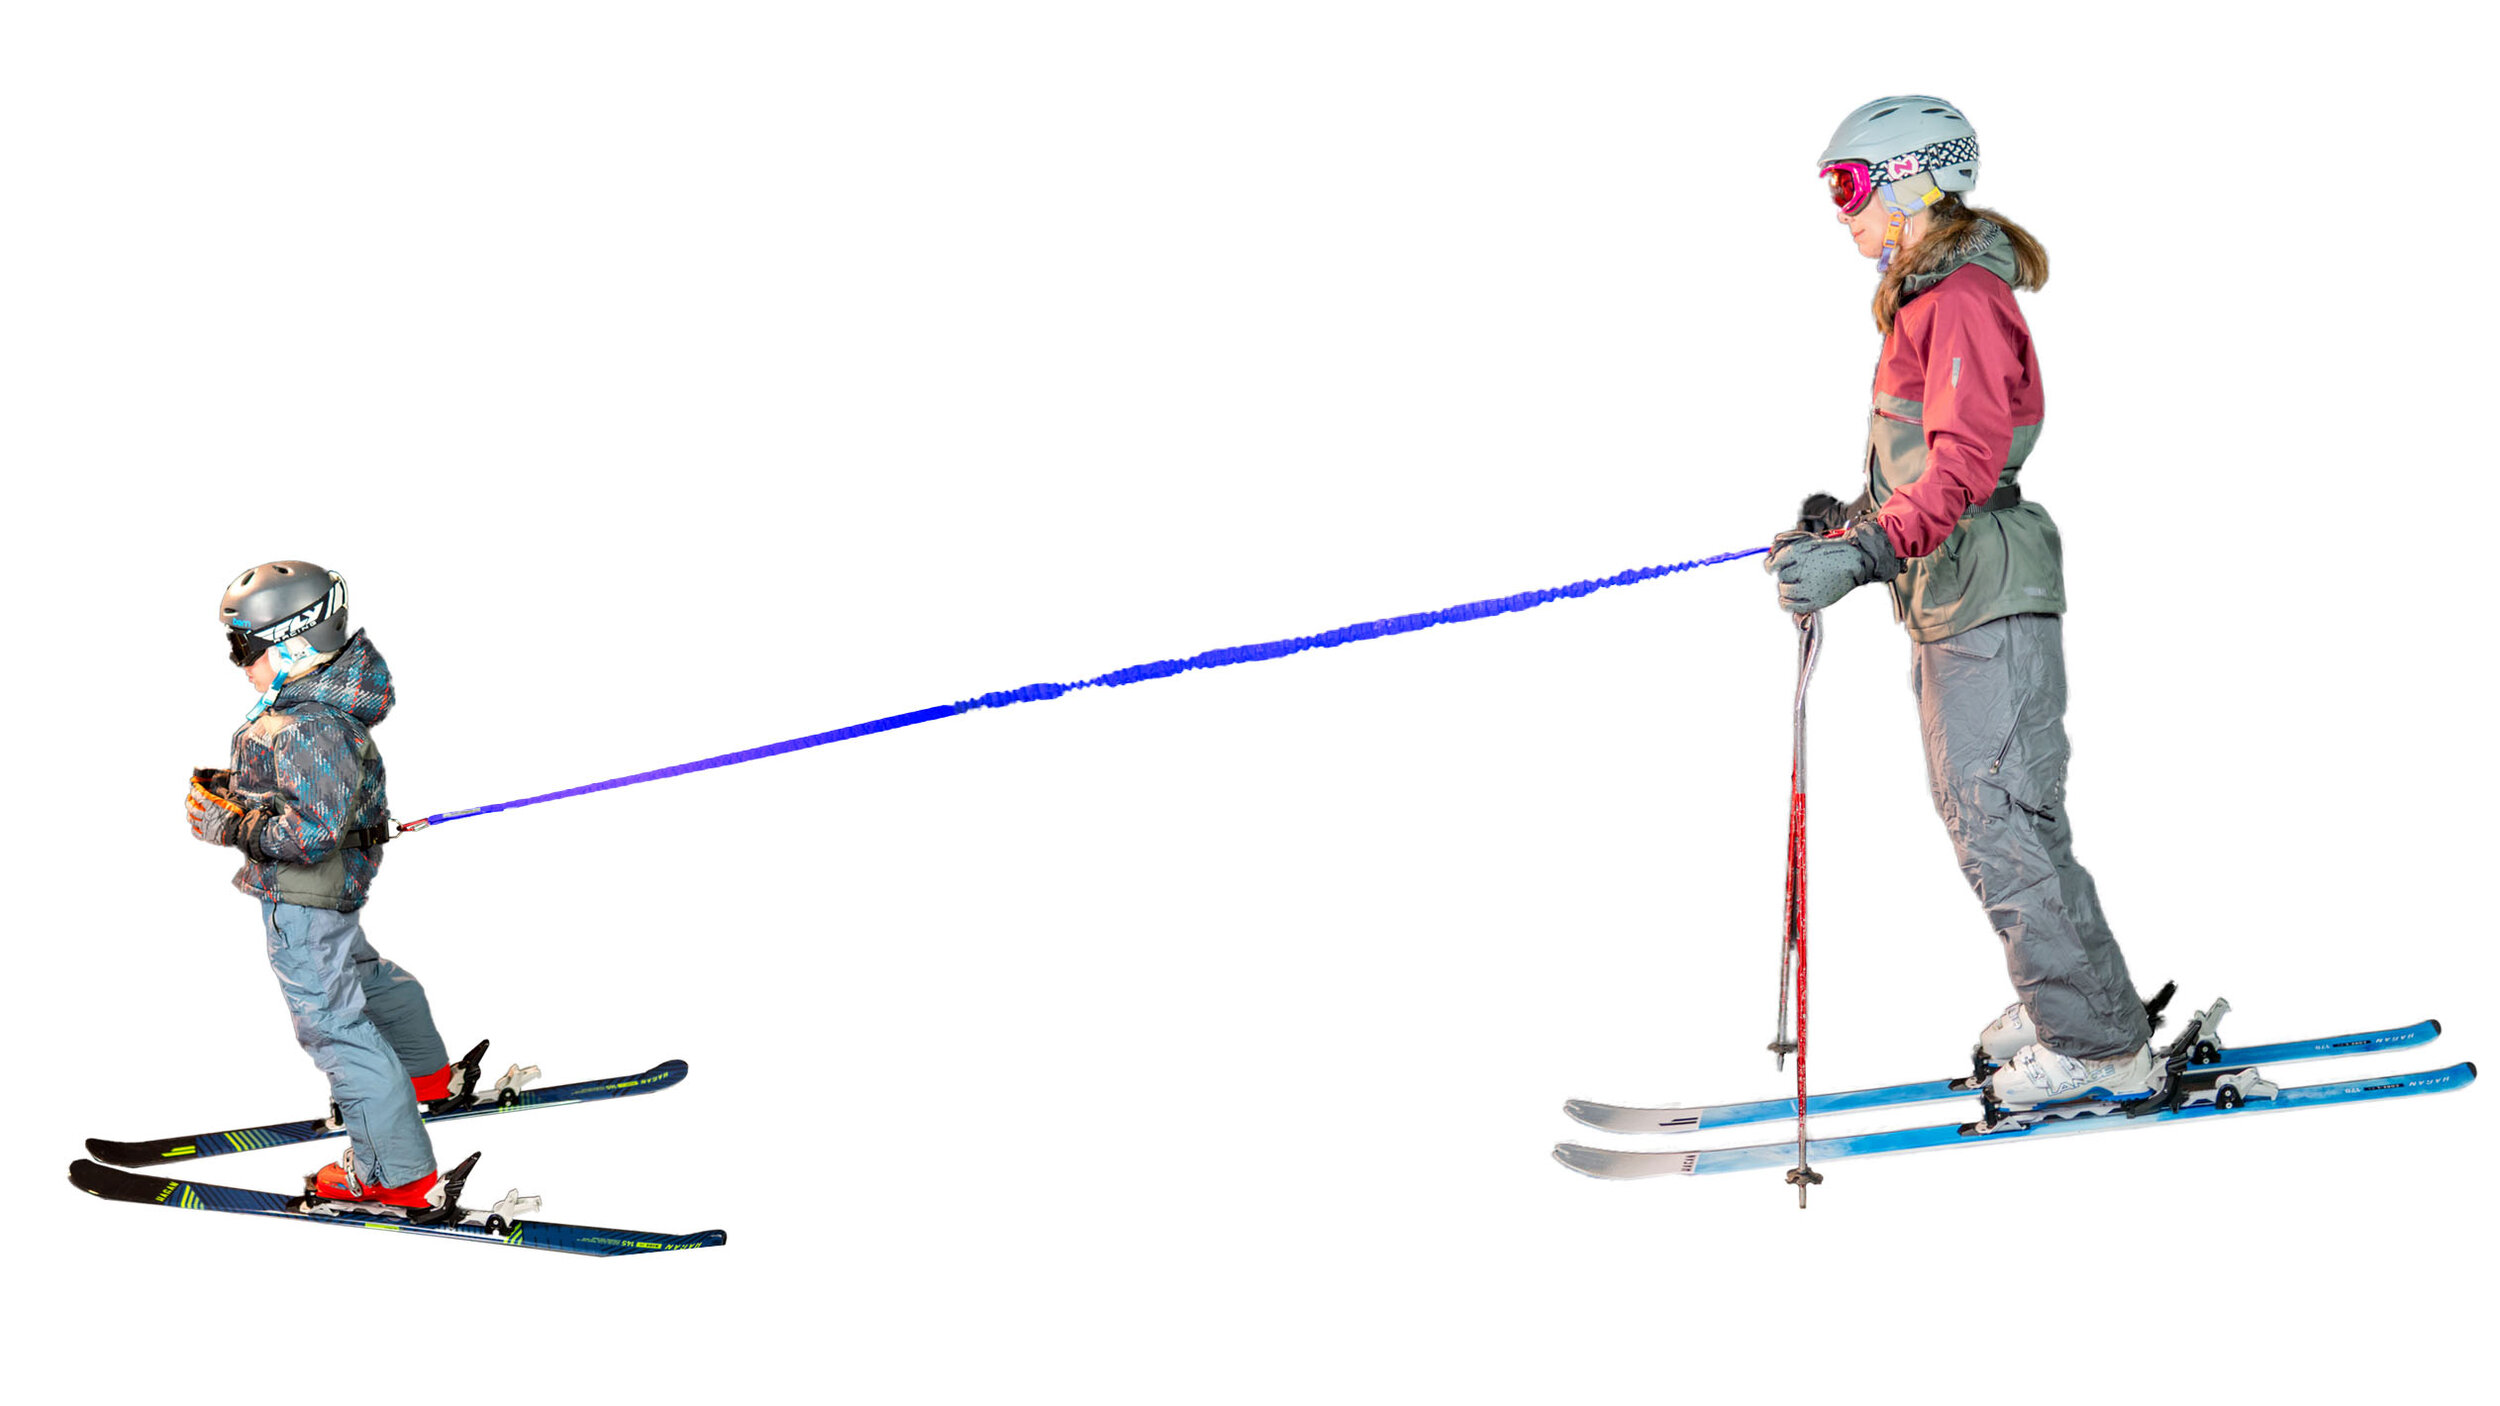 Belt Kid and Adult Downhill From Side Full Image.jpg